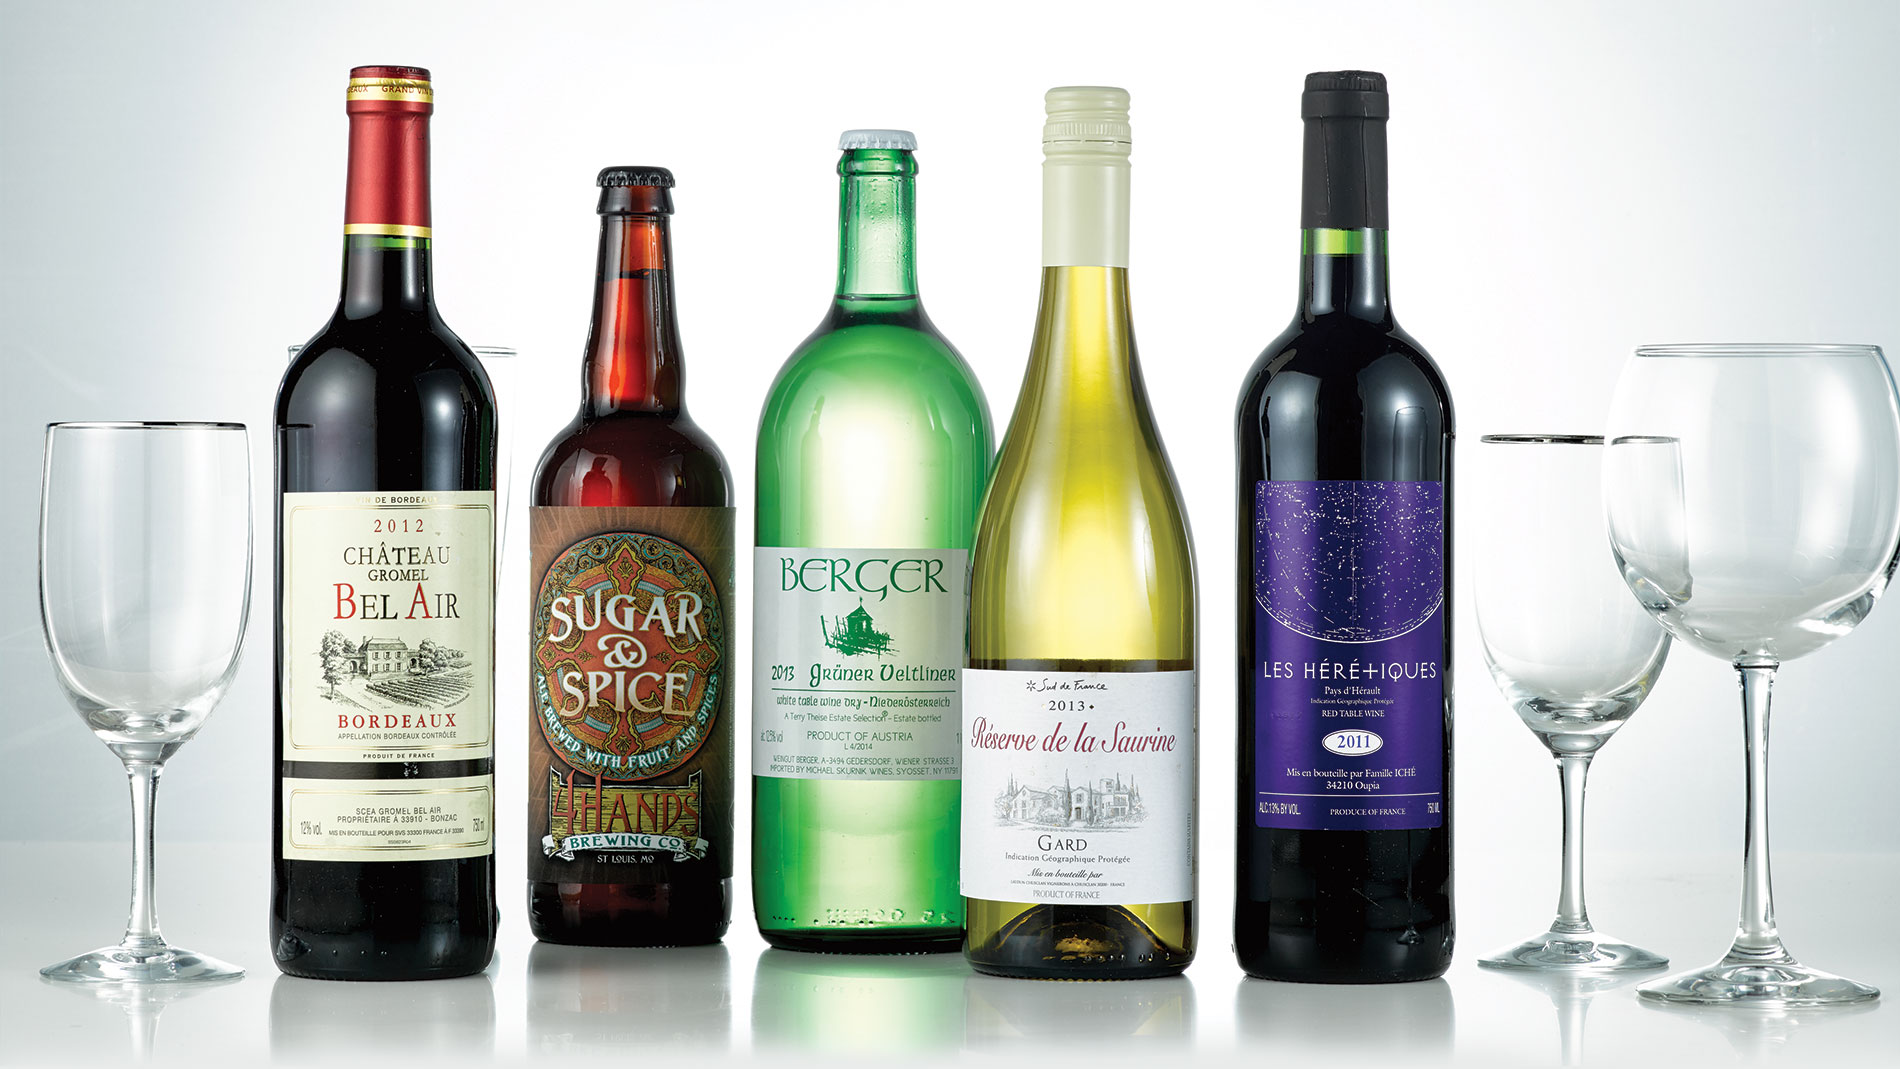 5 bottles under $20 perfect for a potluck